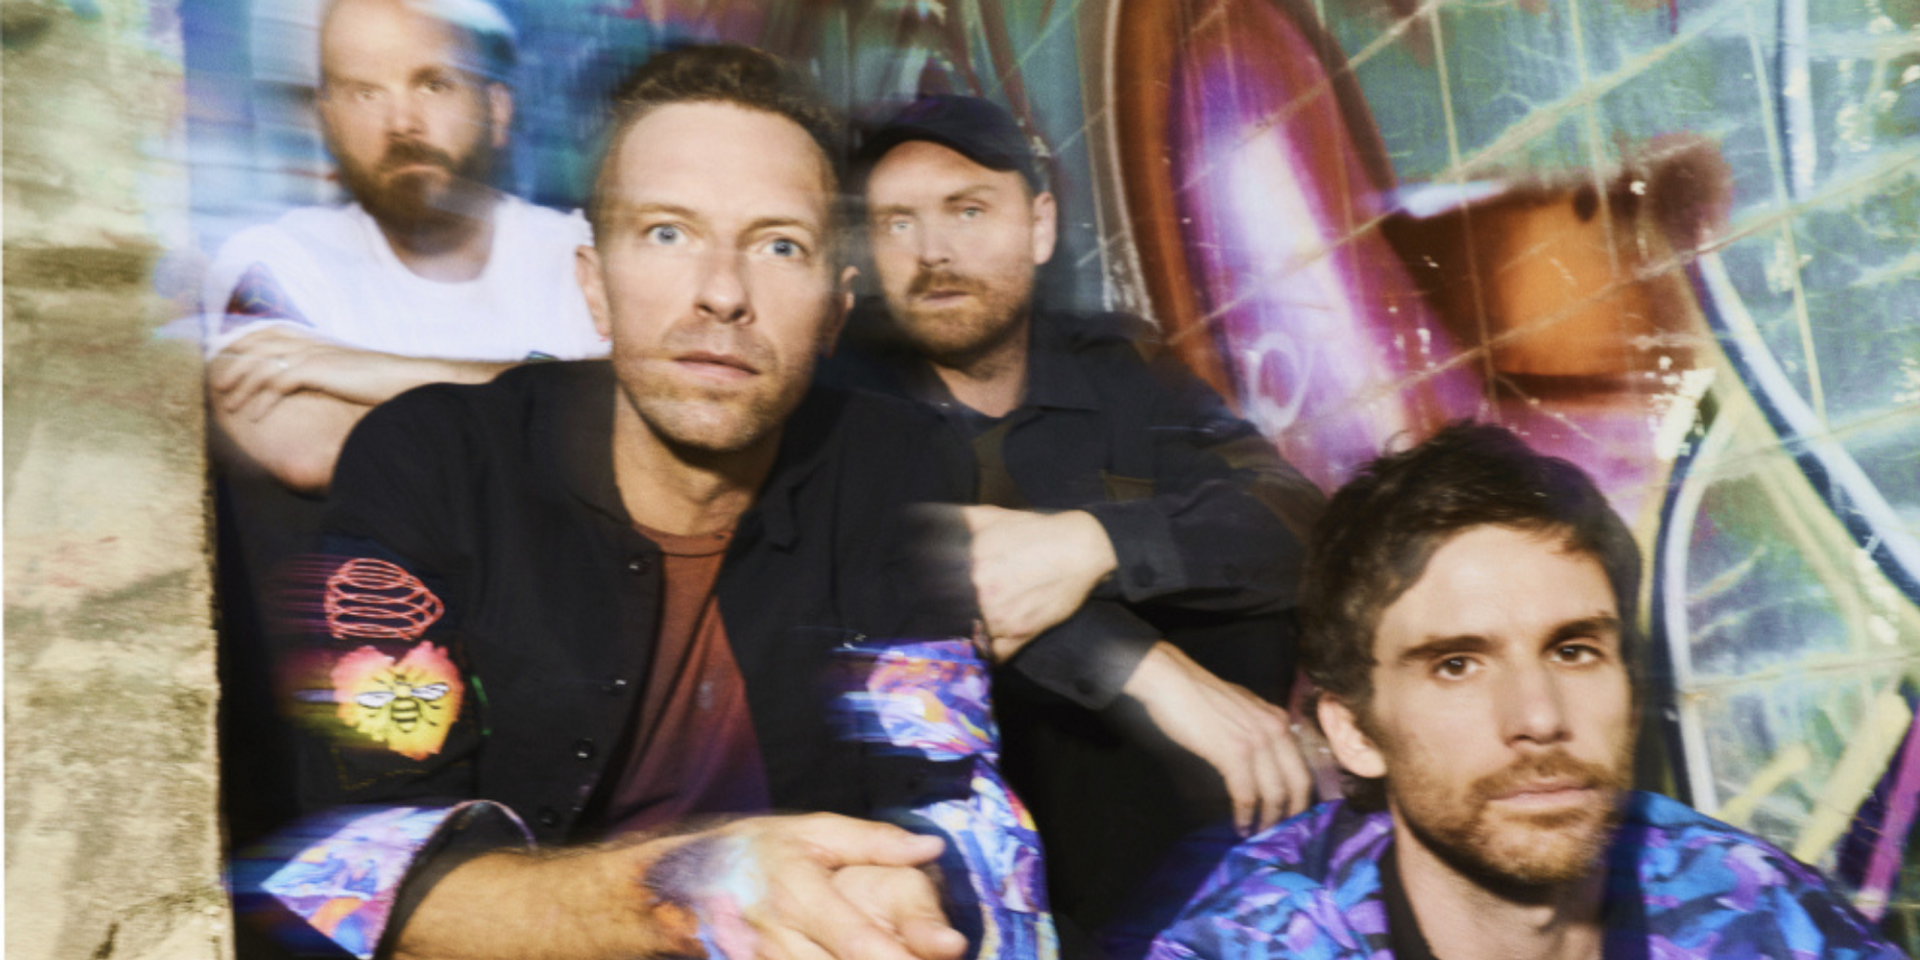 Coldplay preview upcoming Max Martin-produced album 'Music of the Spheres' with new single, 'Coloratura' – watch